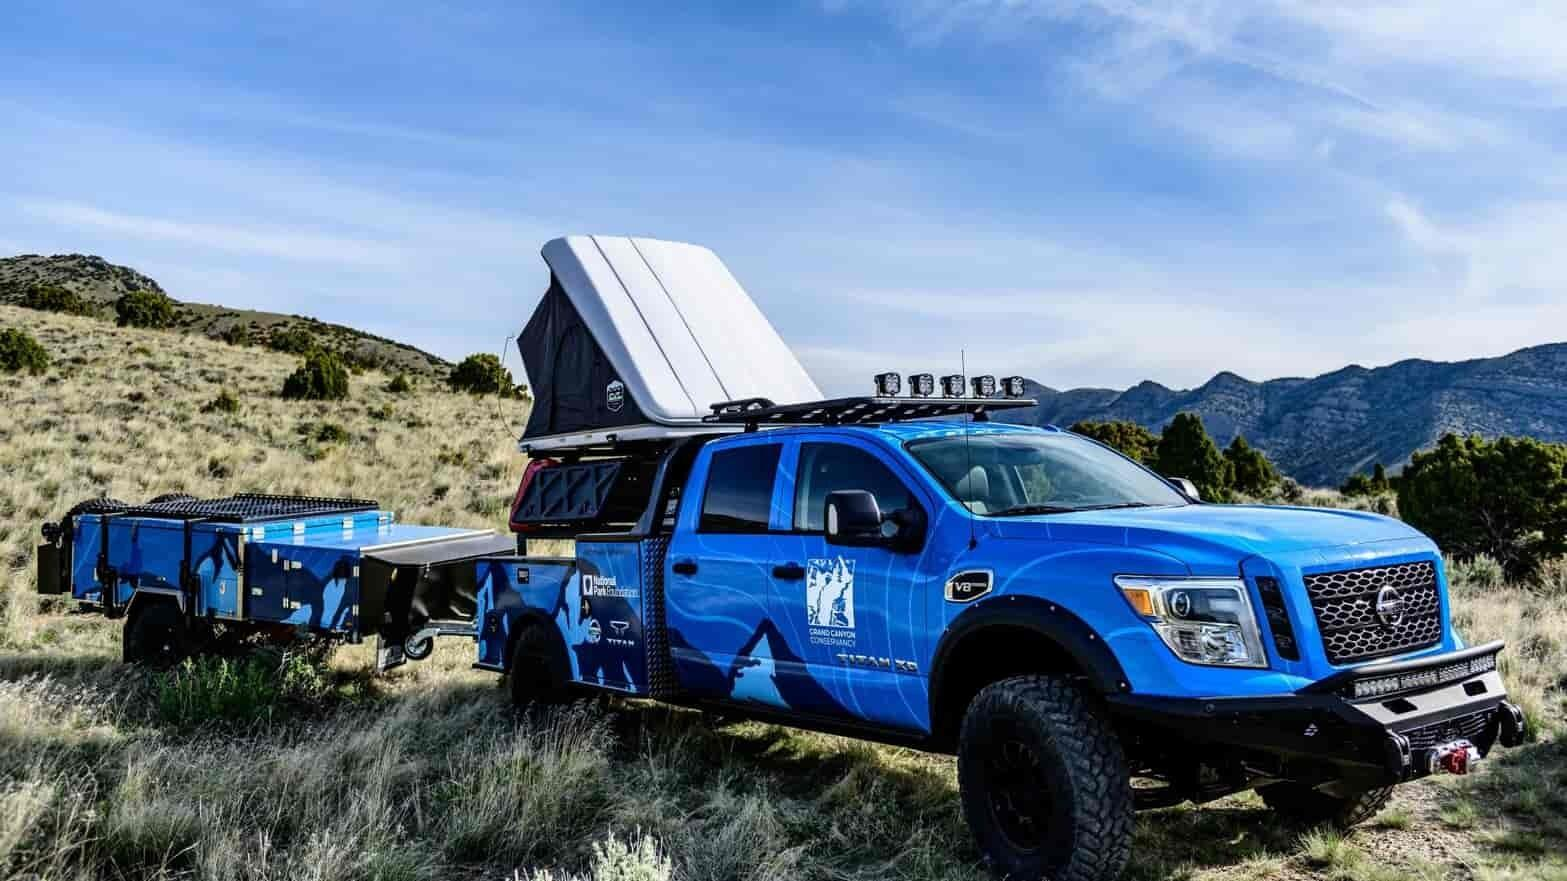 This mega Nissan Titan was built for the Grand Canyon